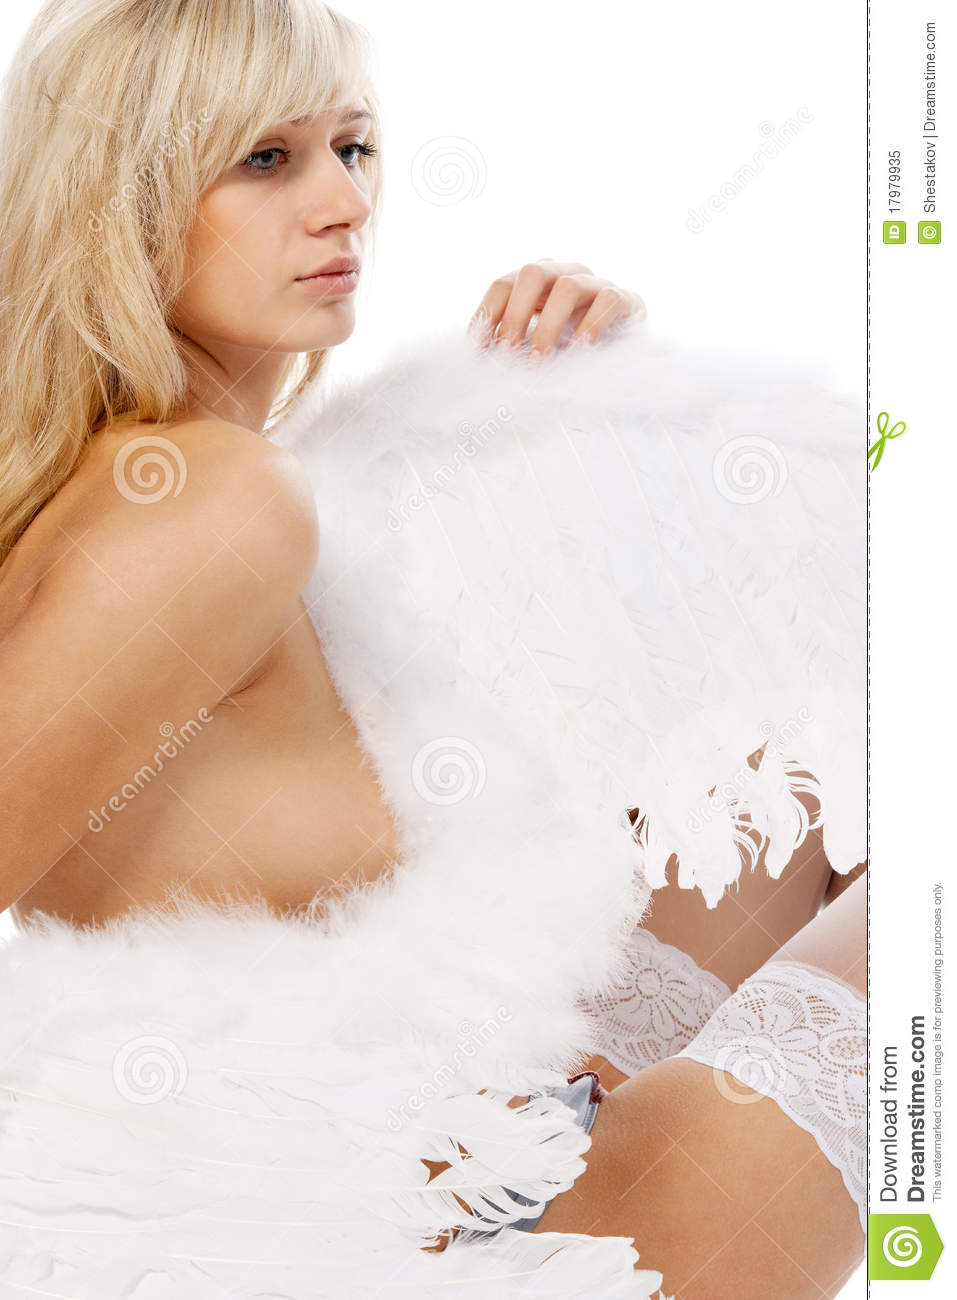 Sad Blonde Angel In Stockings Stock Image Image Of